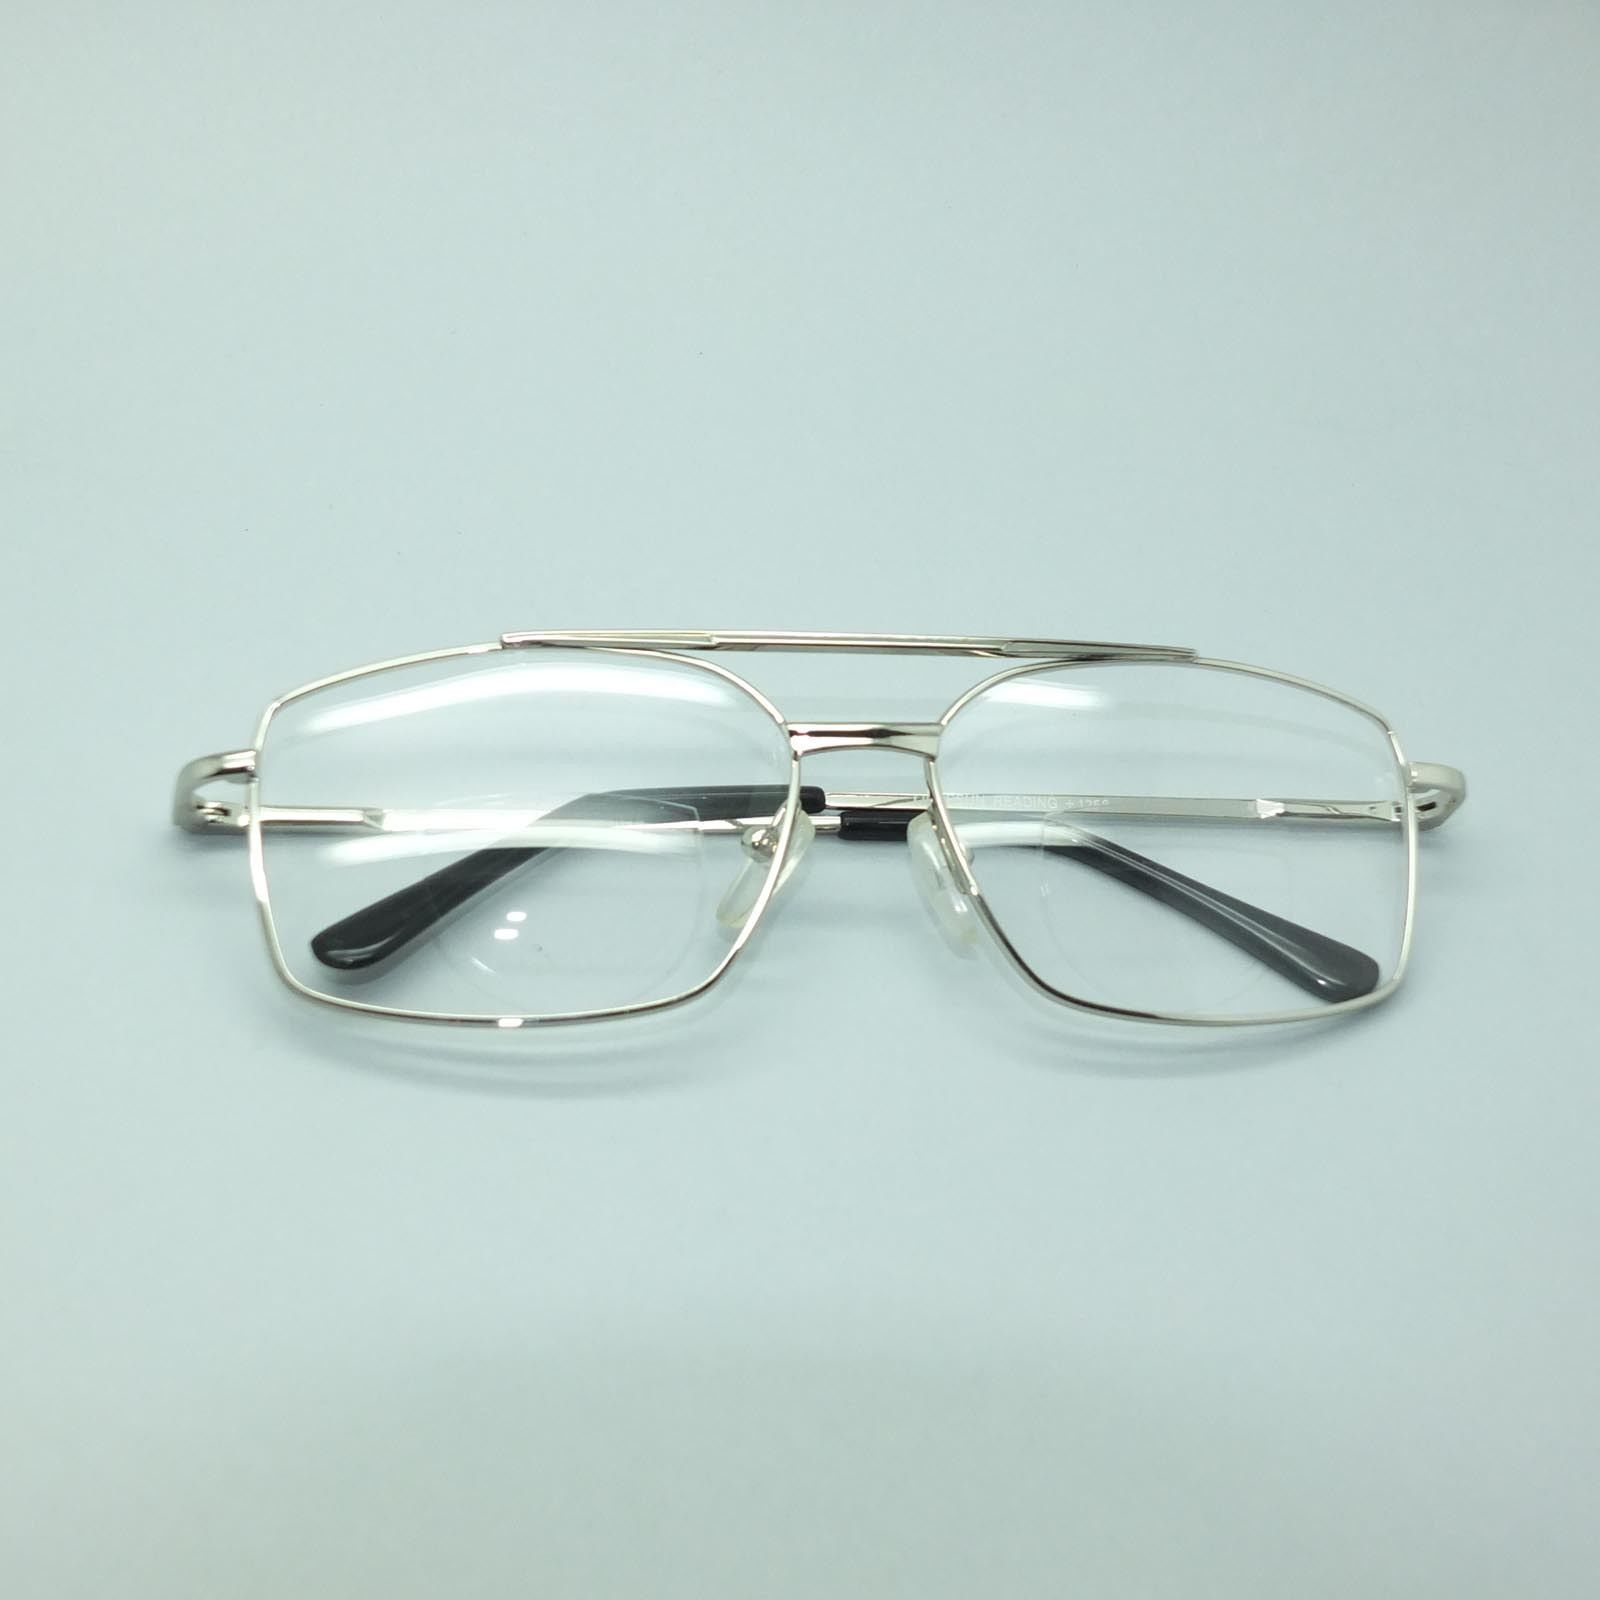 Bifocal Reading Glasses Square Aviator 80's Style Silver Metal Frame +2.25 Lens